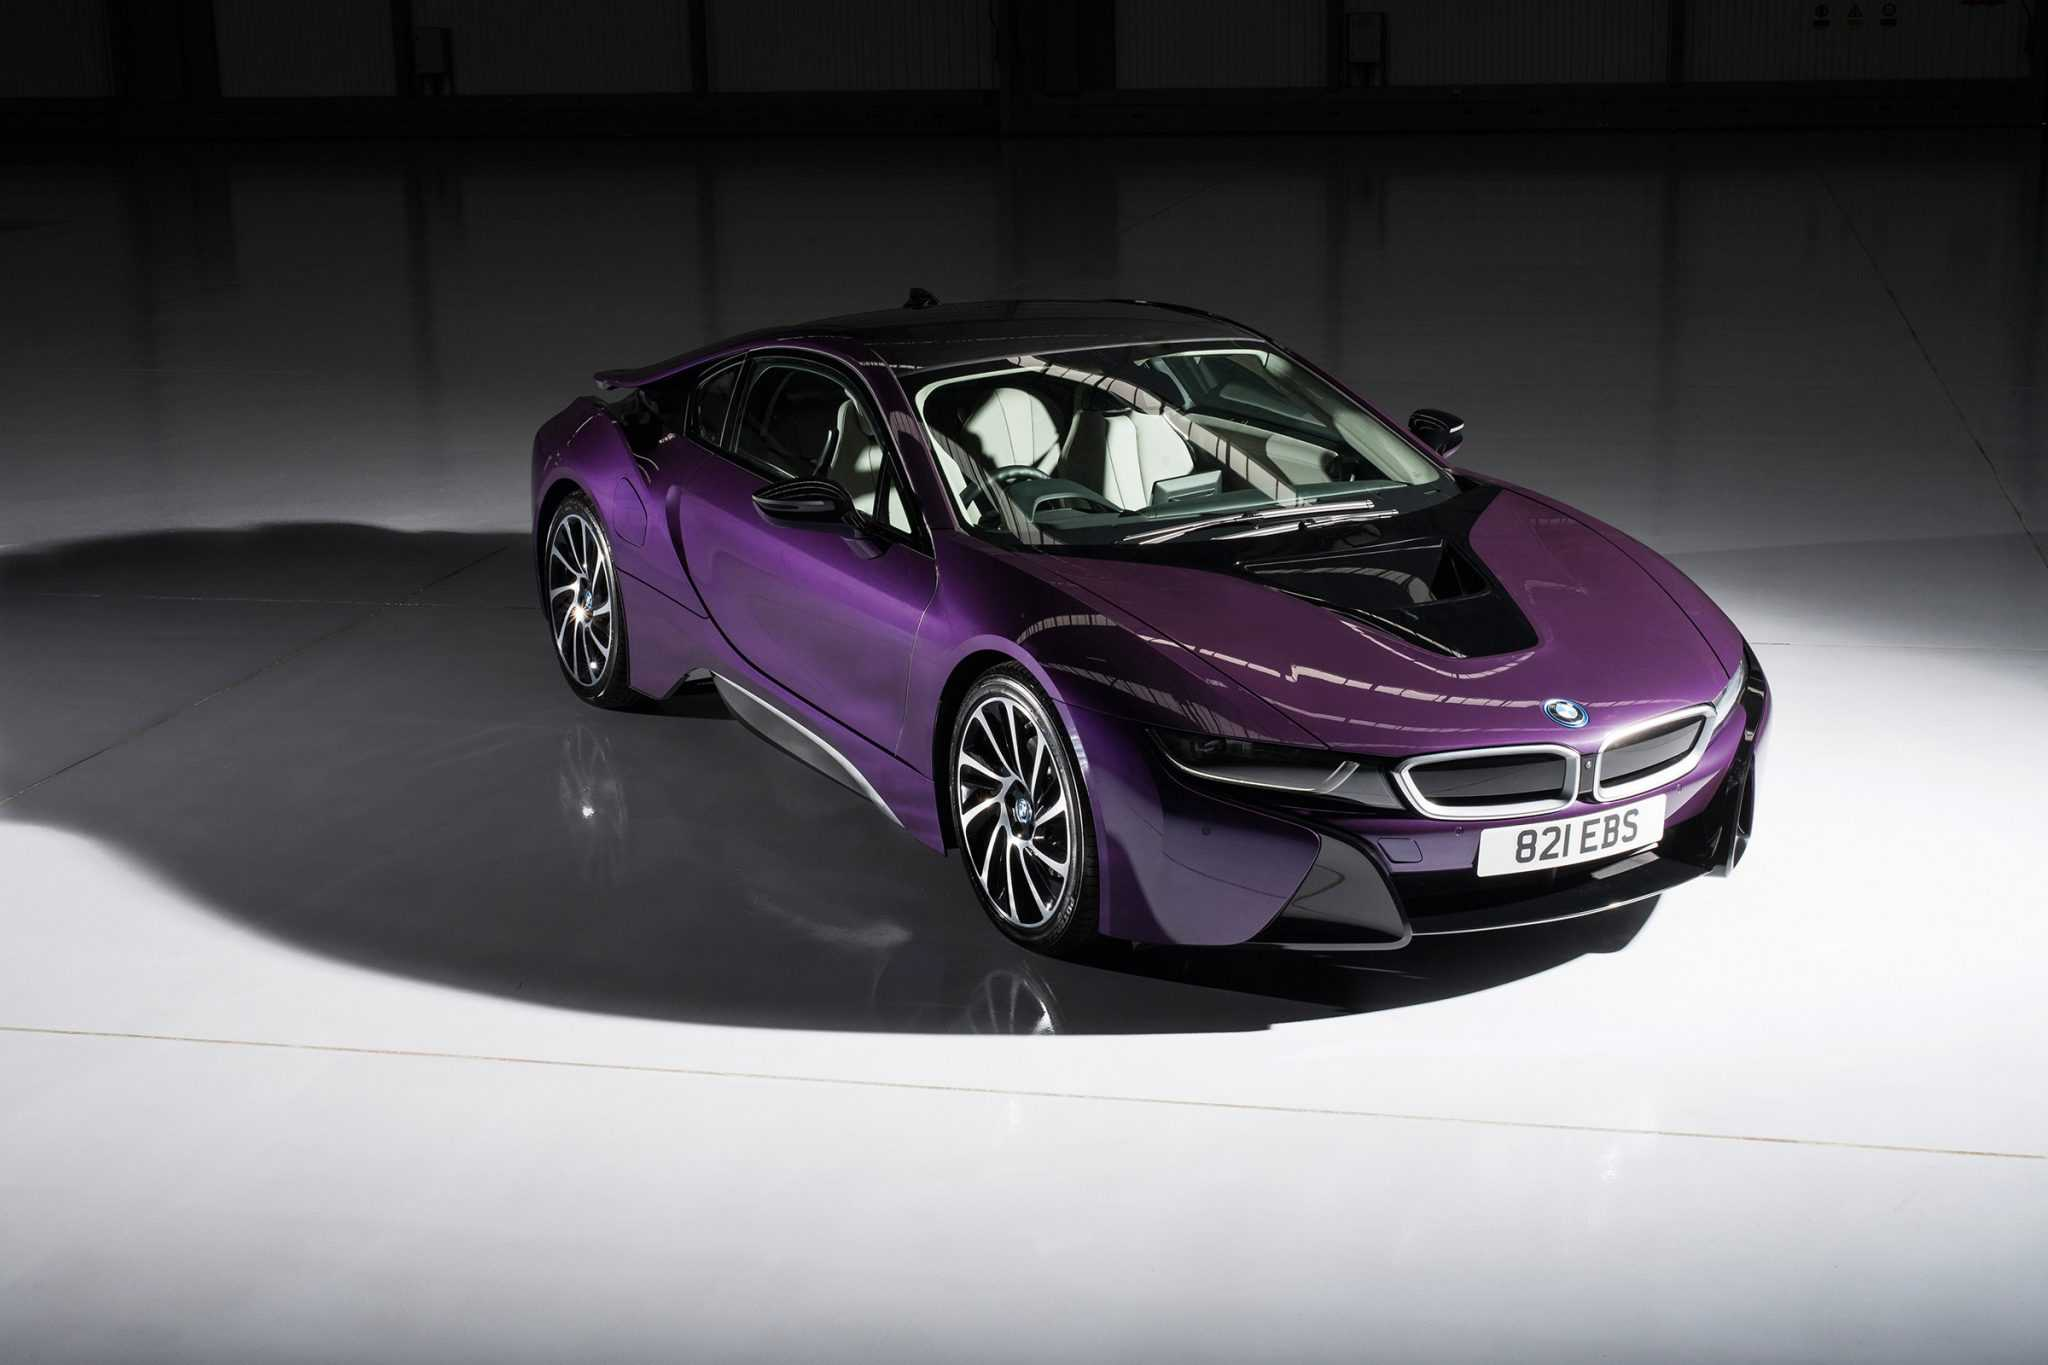 Worksheet. BMW i8 Offers Individual Paintwork Customization Option for Buyers